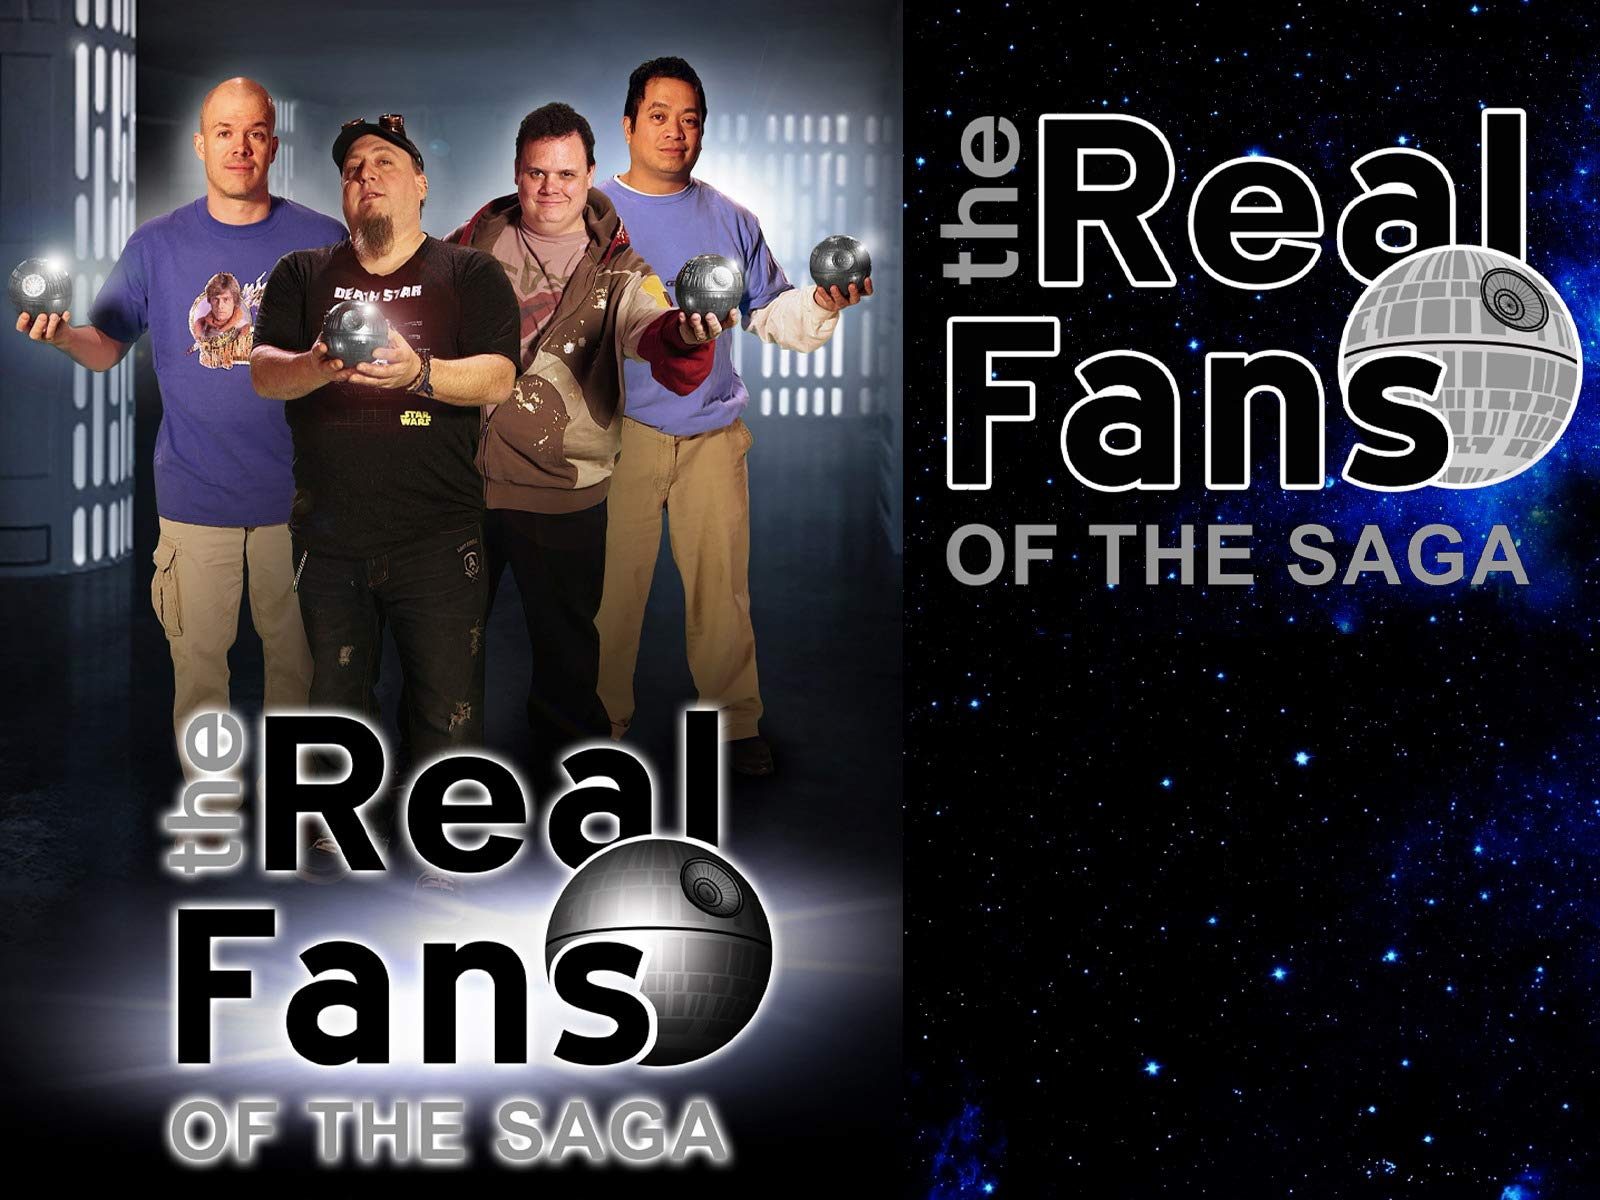 The Real Fans Of The Saga